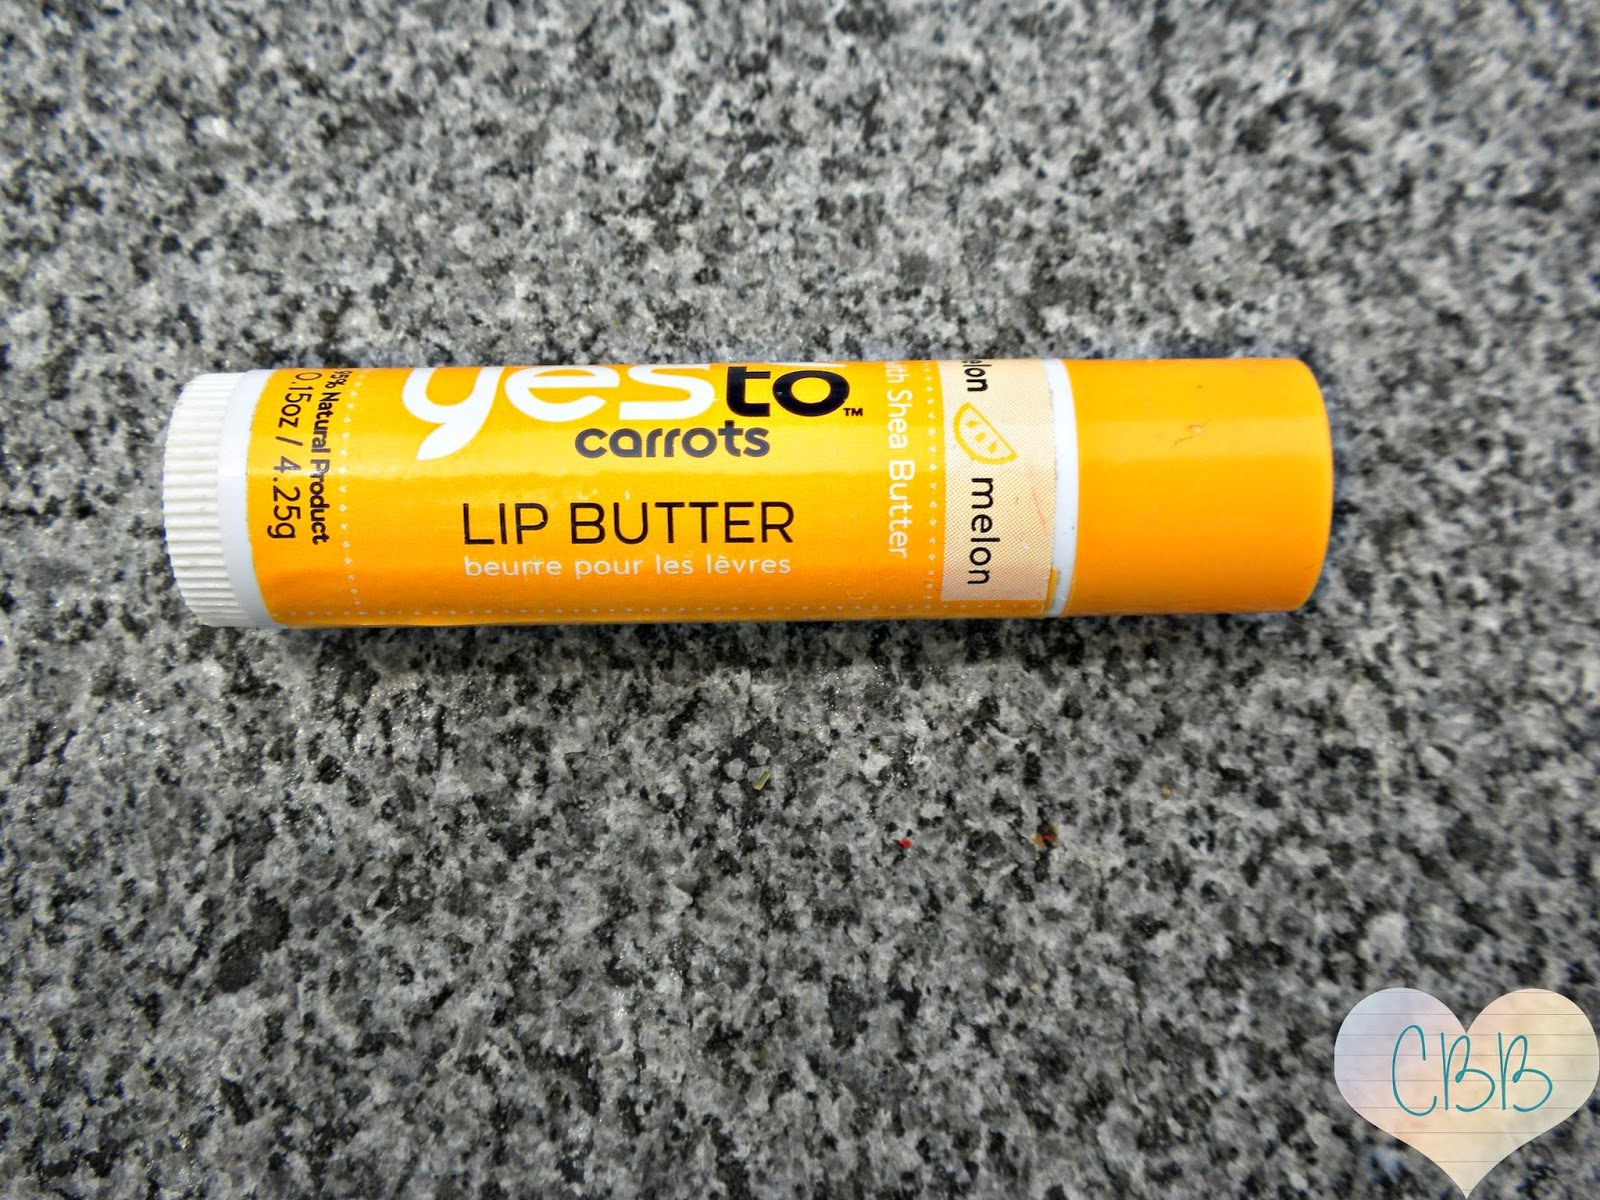 Everyday Lip Balm: YES TO CARROTS Lip Butter ($3)